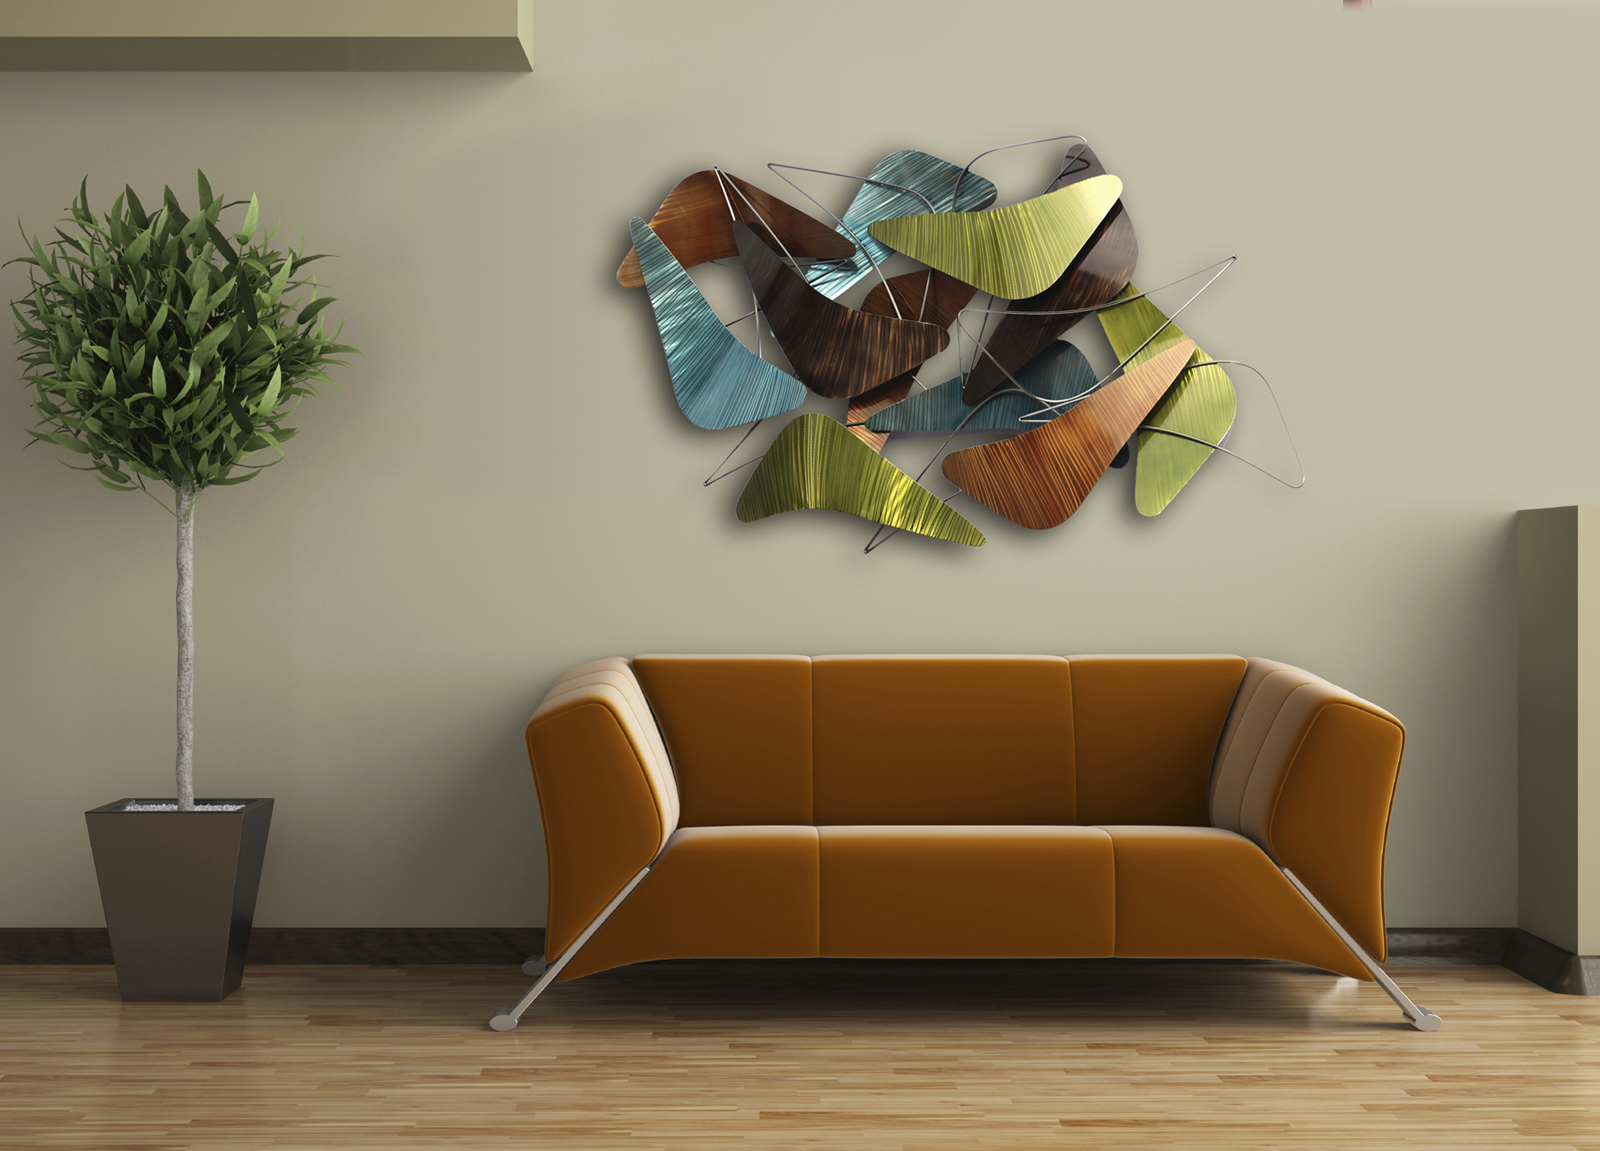 Low Priced Living Room Sets Kitsch Gift & Home Today: New Contemporary Wall Designs Are ...